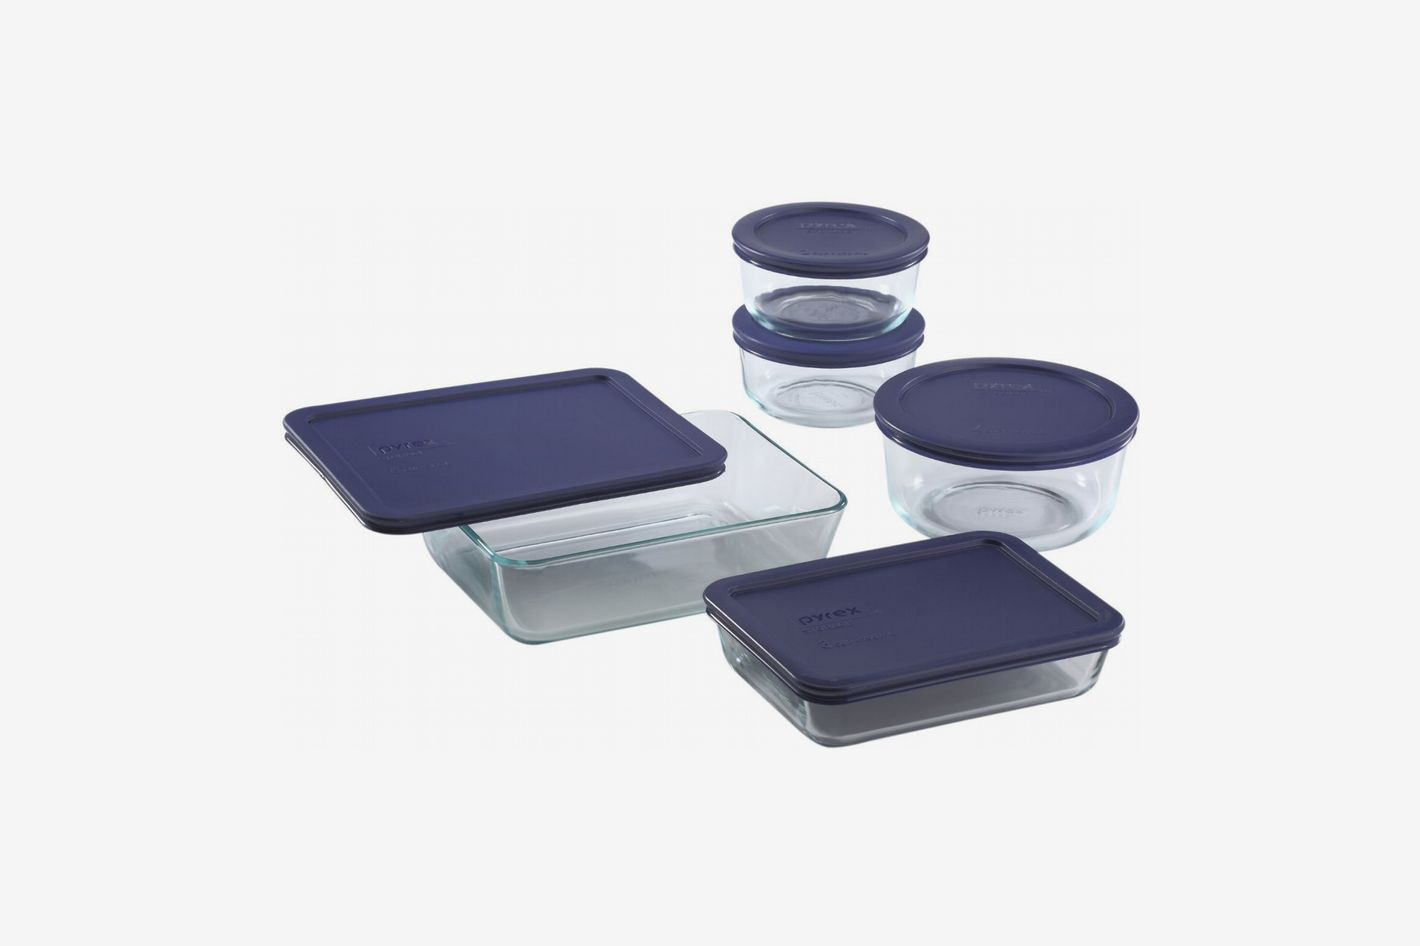 4d46803db9f Pyrex Simply Store Glass Food-Container Set With Blue Lids (10-Piece)